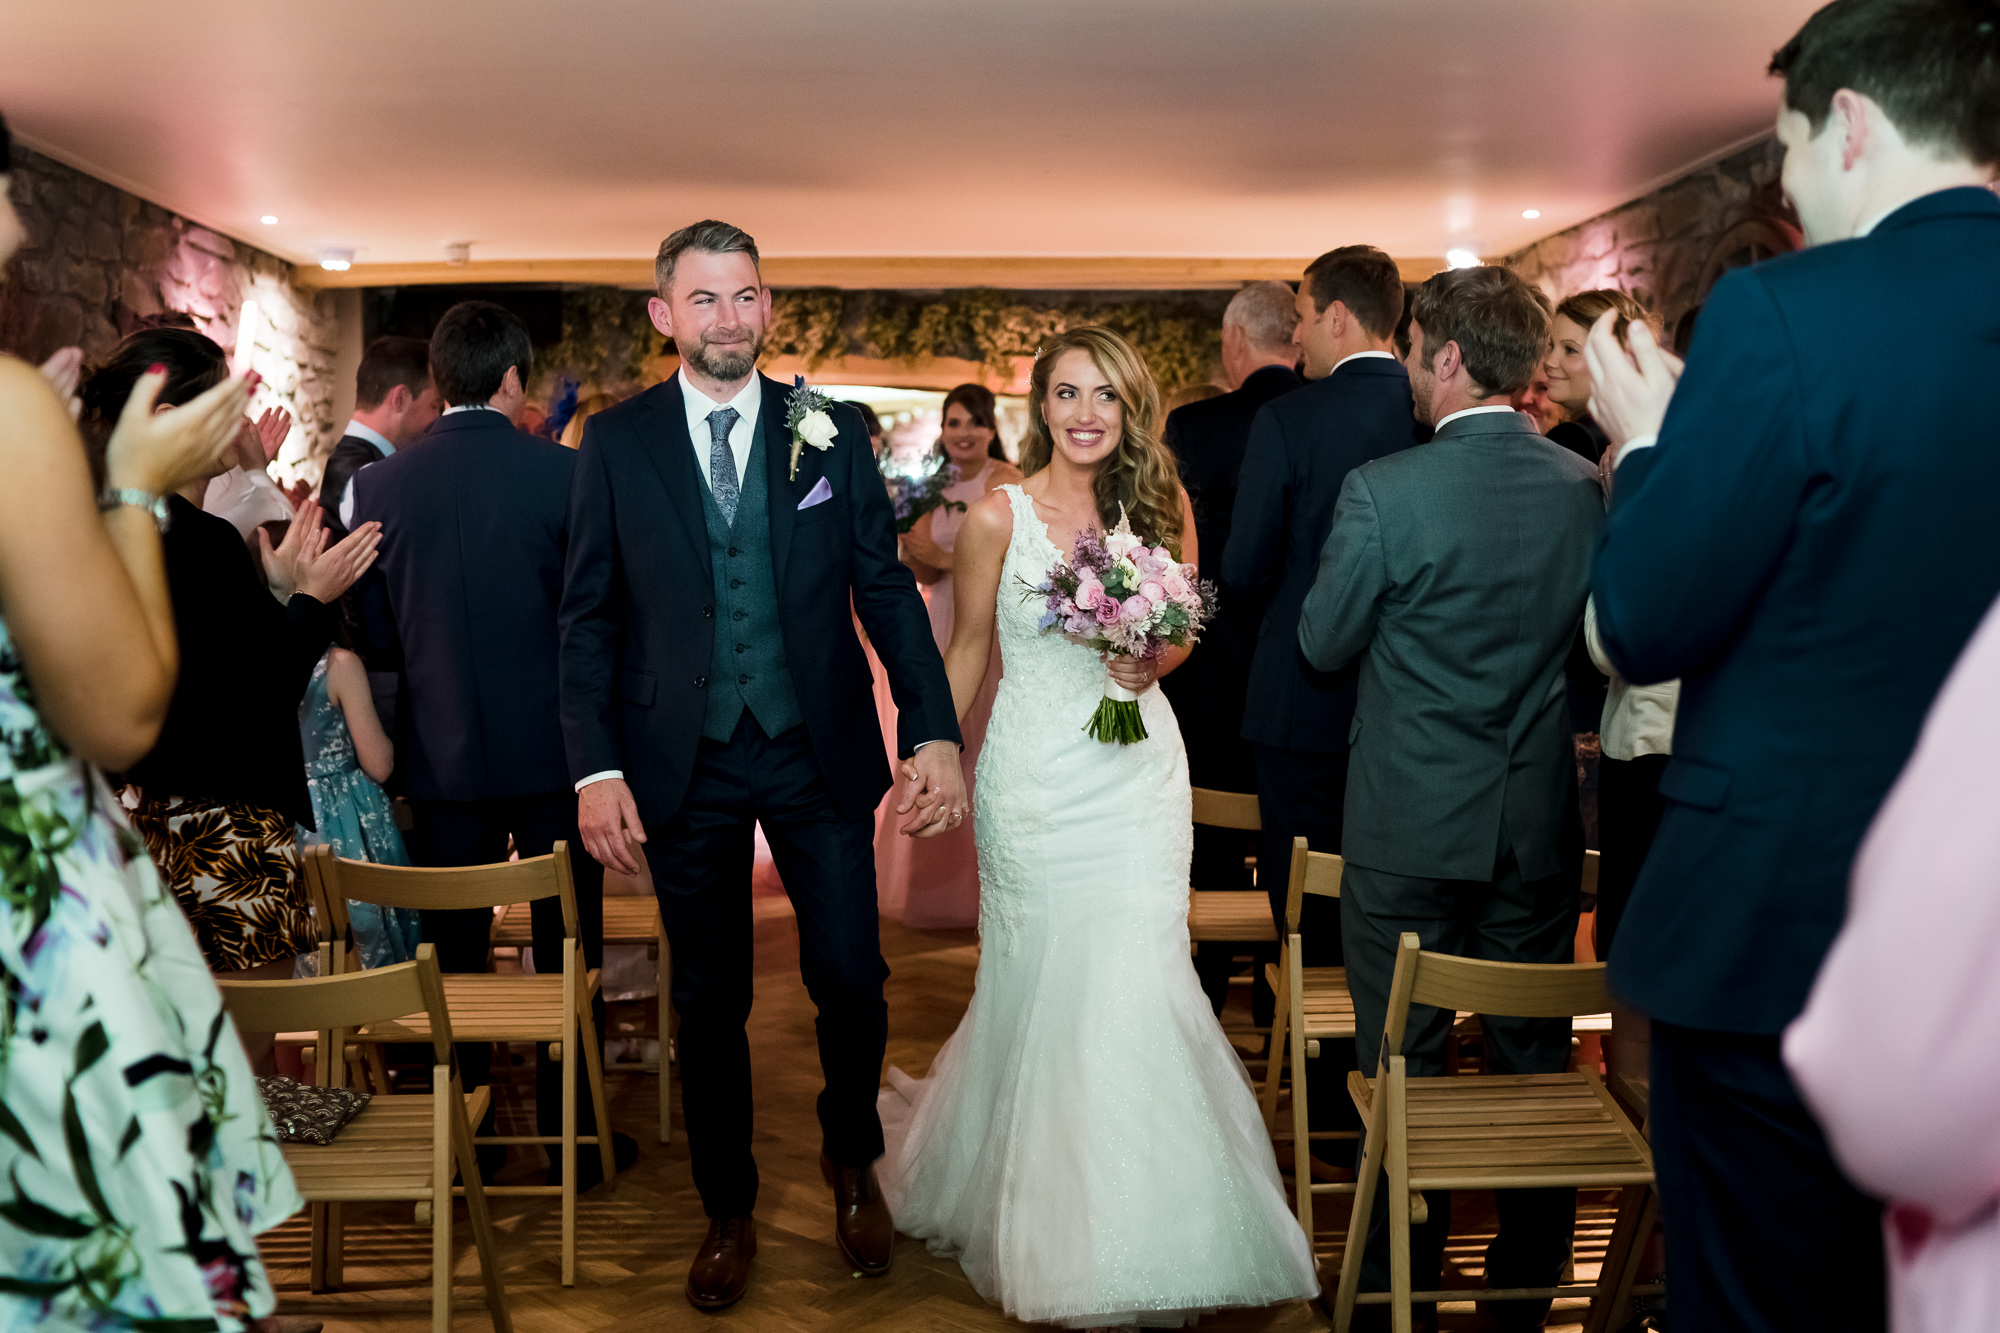 Tower Hill BArn Wedding Photographer based in north west england (24 of 35).jpg